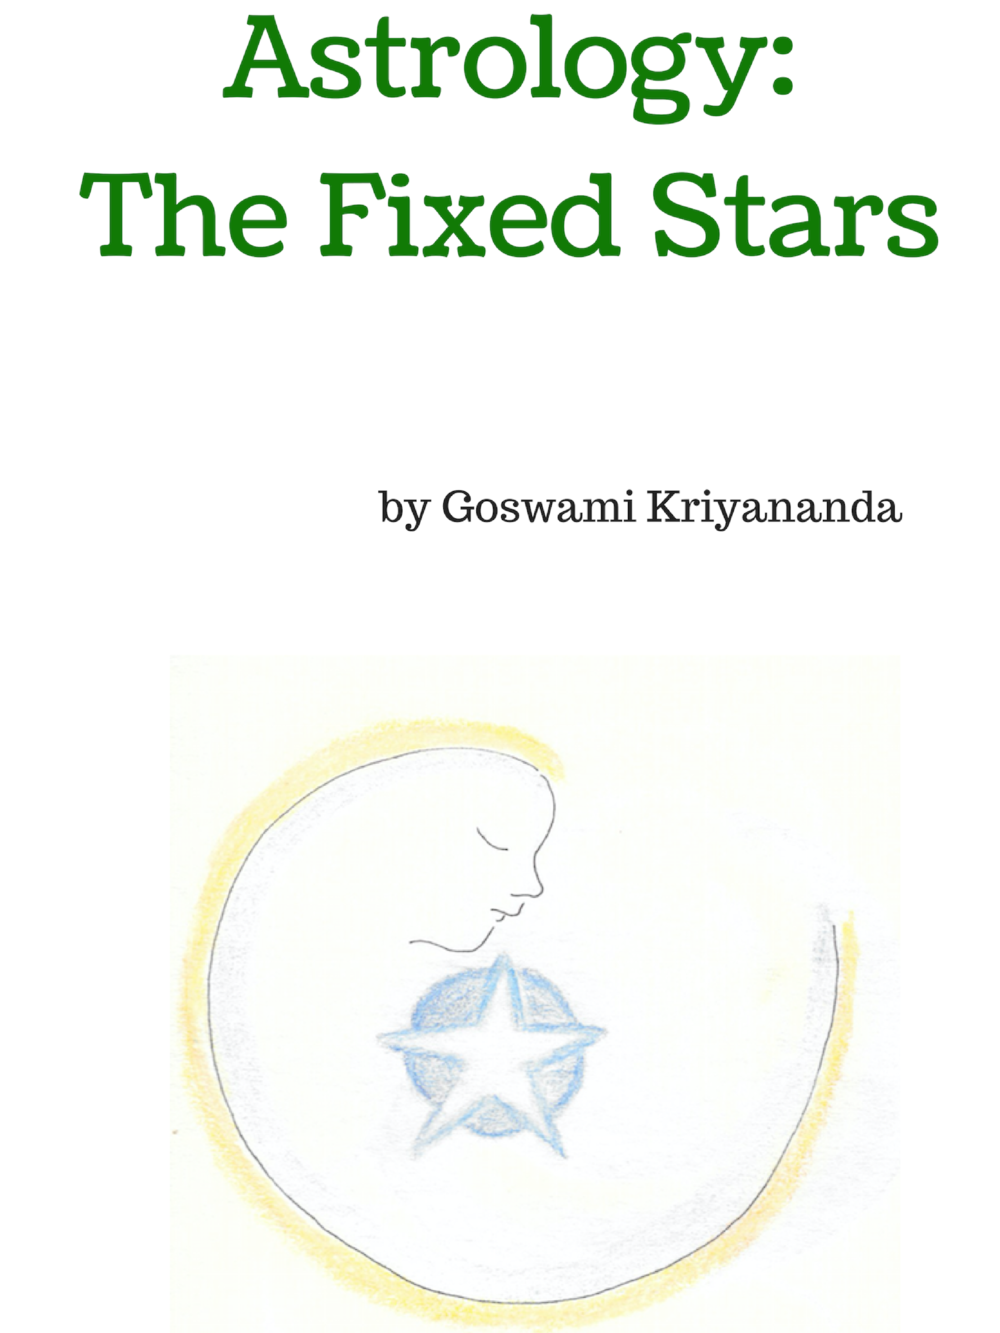 Astrology:The Fixed Stars - $5